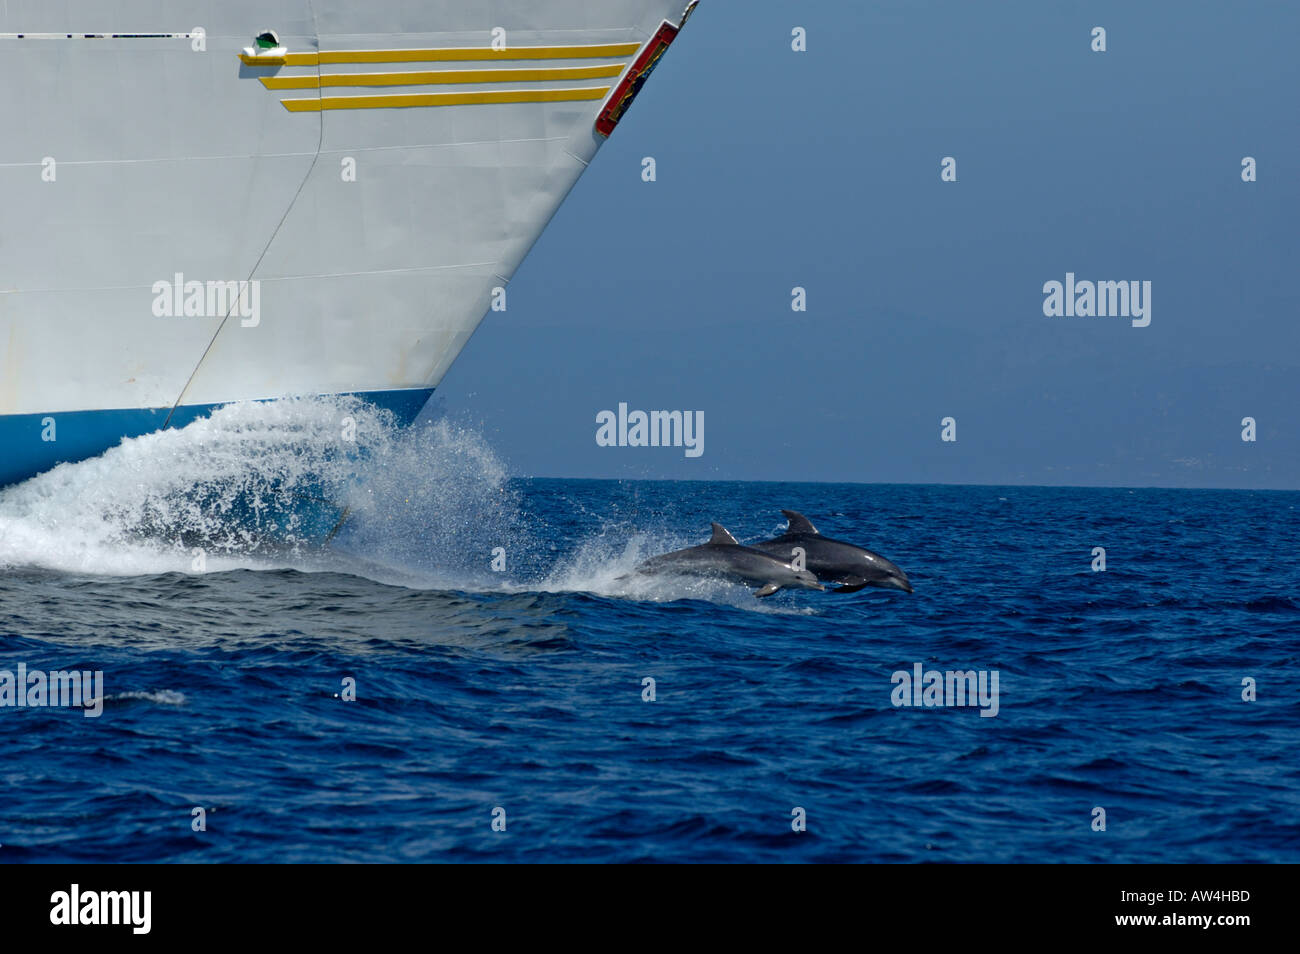 Two bottlenose dolphins (tursiops truncatus) swimming in front of a ship, Tarifa, Andalusia, Spain. - Stock Image